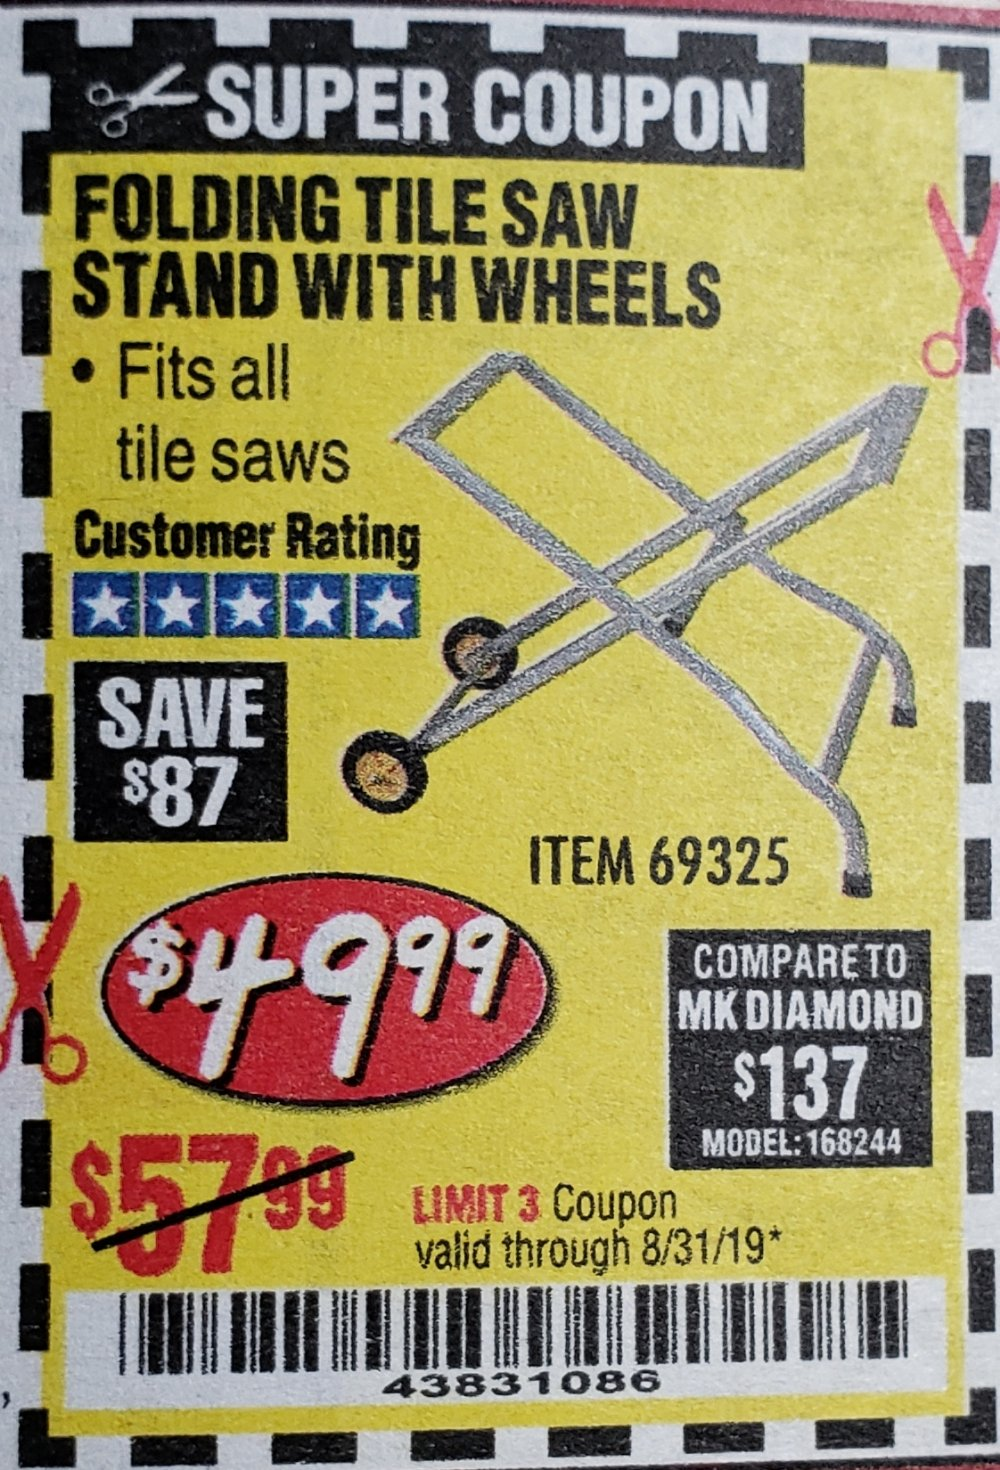 Harbor Freight Coupon, HF Coupons - Folding Tile Saw Stand With Wheels